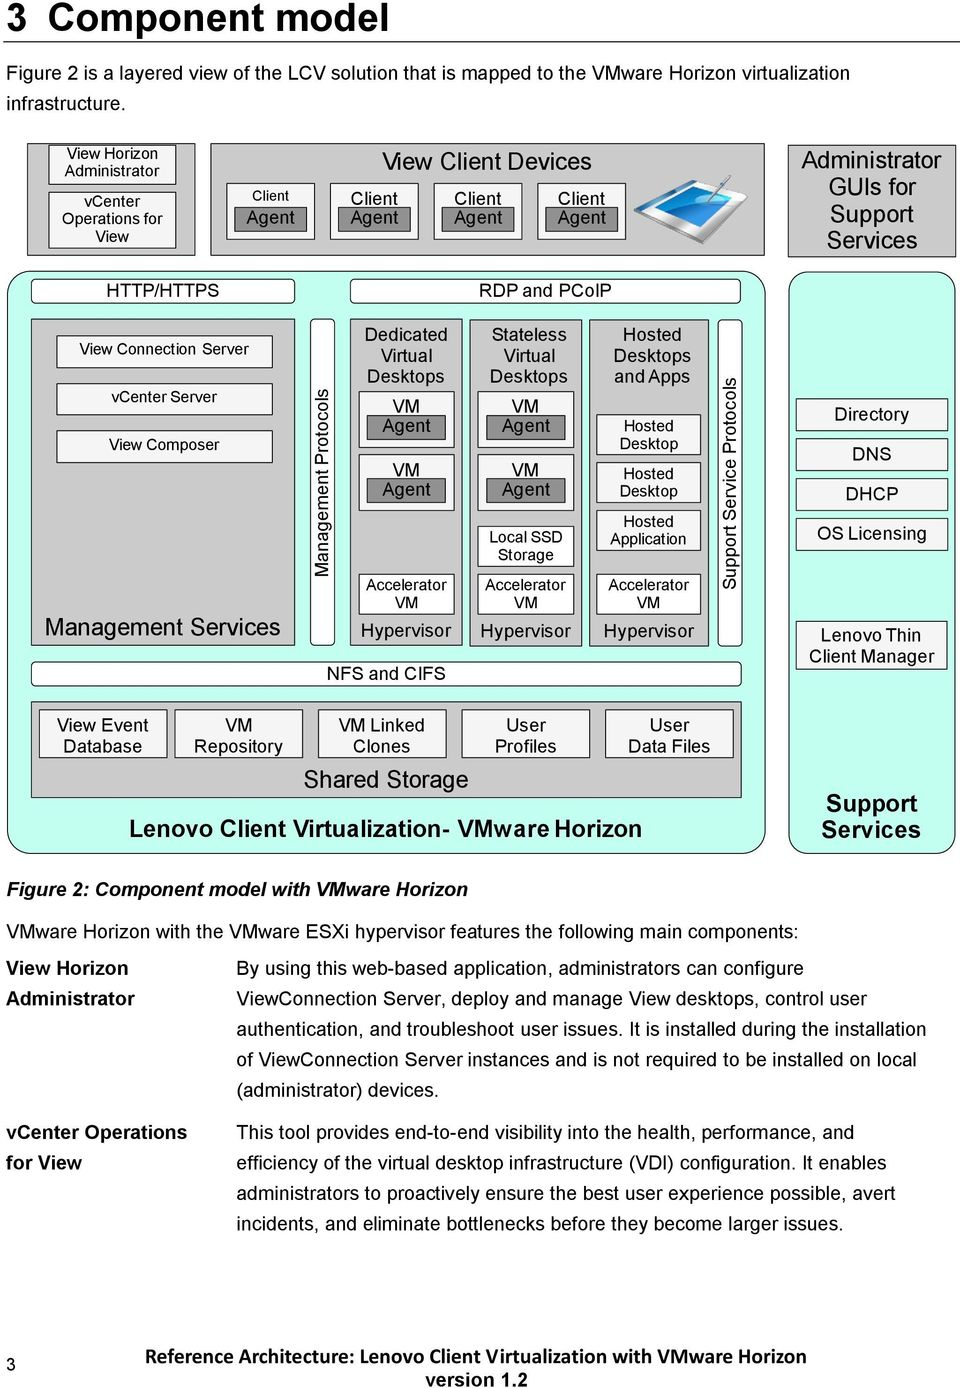 Reference Architecture: Lenovo Client Virtualization with